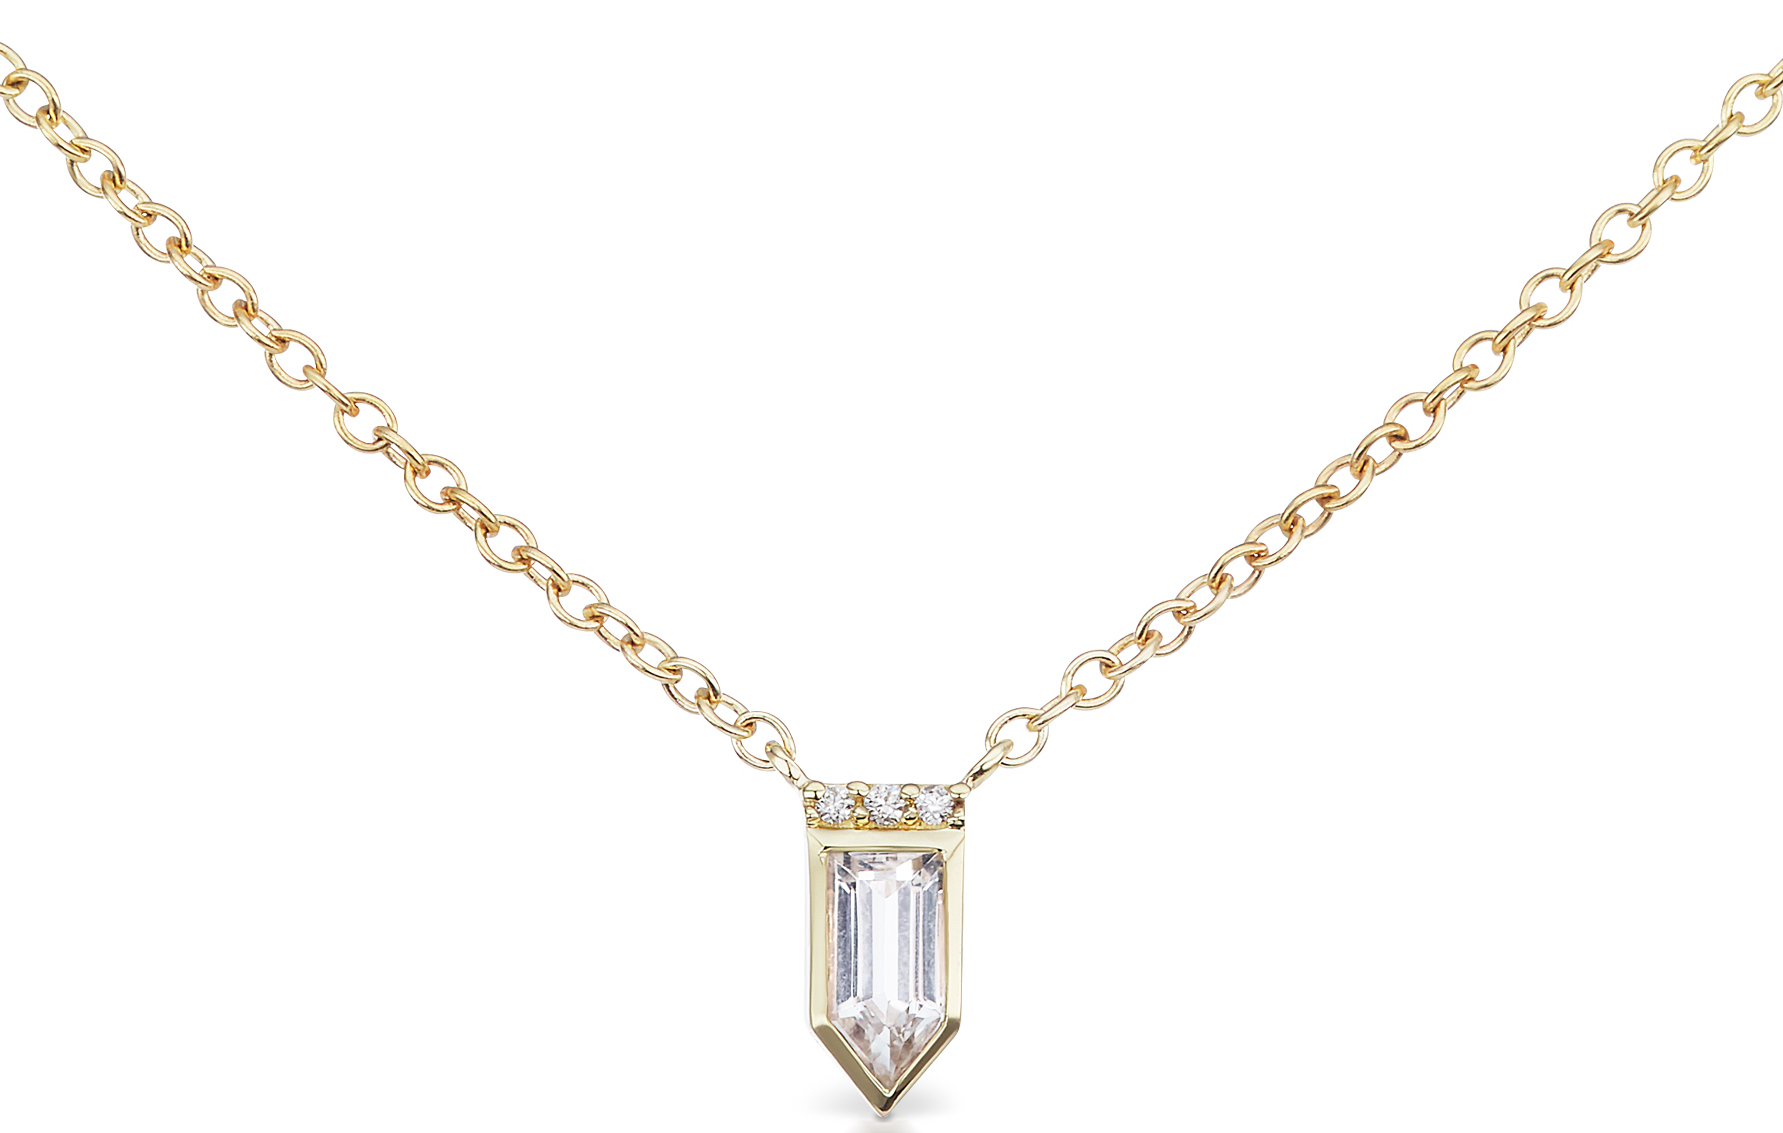 Jane Taylor Jewelry Cirque petite arrow necklace | JCK On Your Market